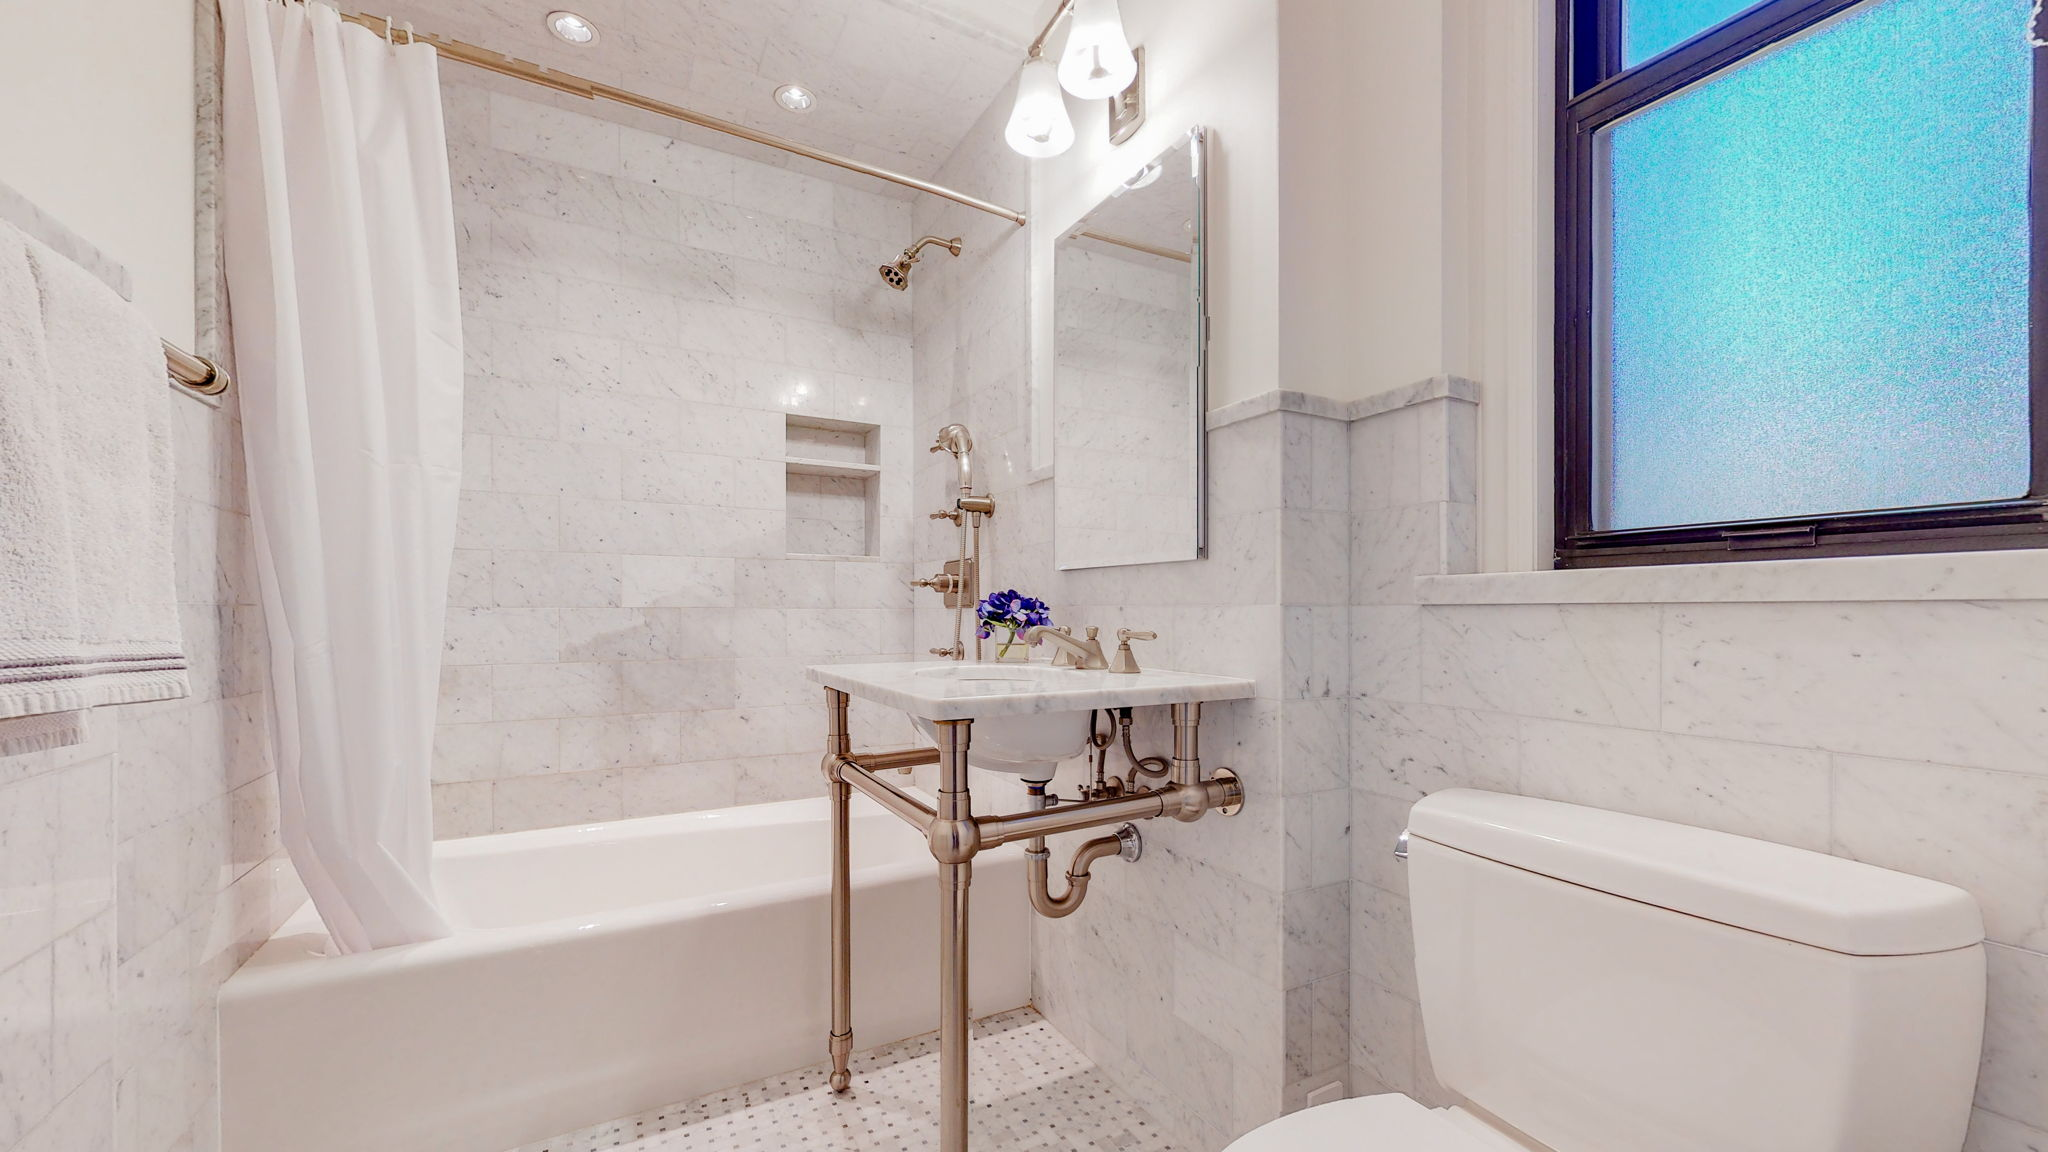 West 86th Street 107, New York, New York, New York, United States 10024, 2 Bedrooms Bedrooms, ,1.5 BathroomsBathrooms,Co-op,IN-CONTRACT,107 West 86,107,1154